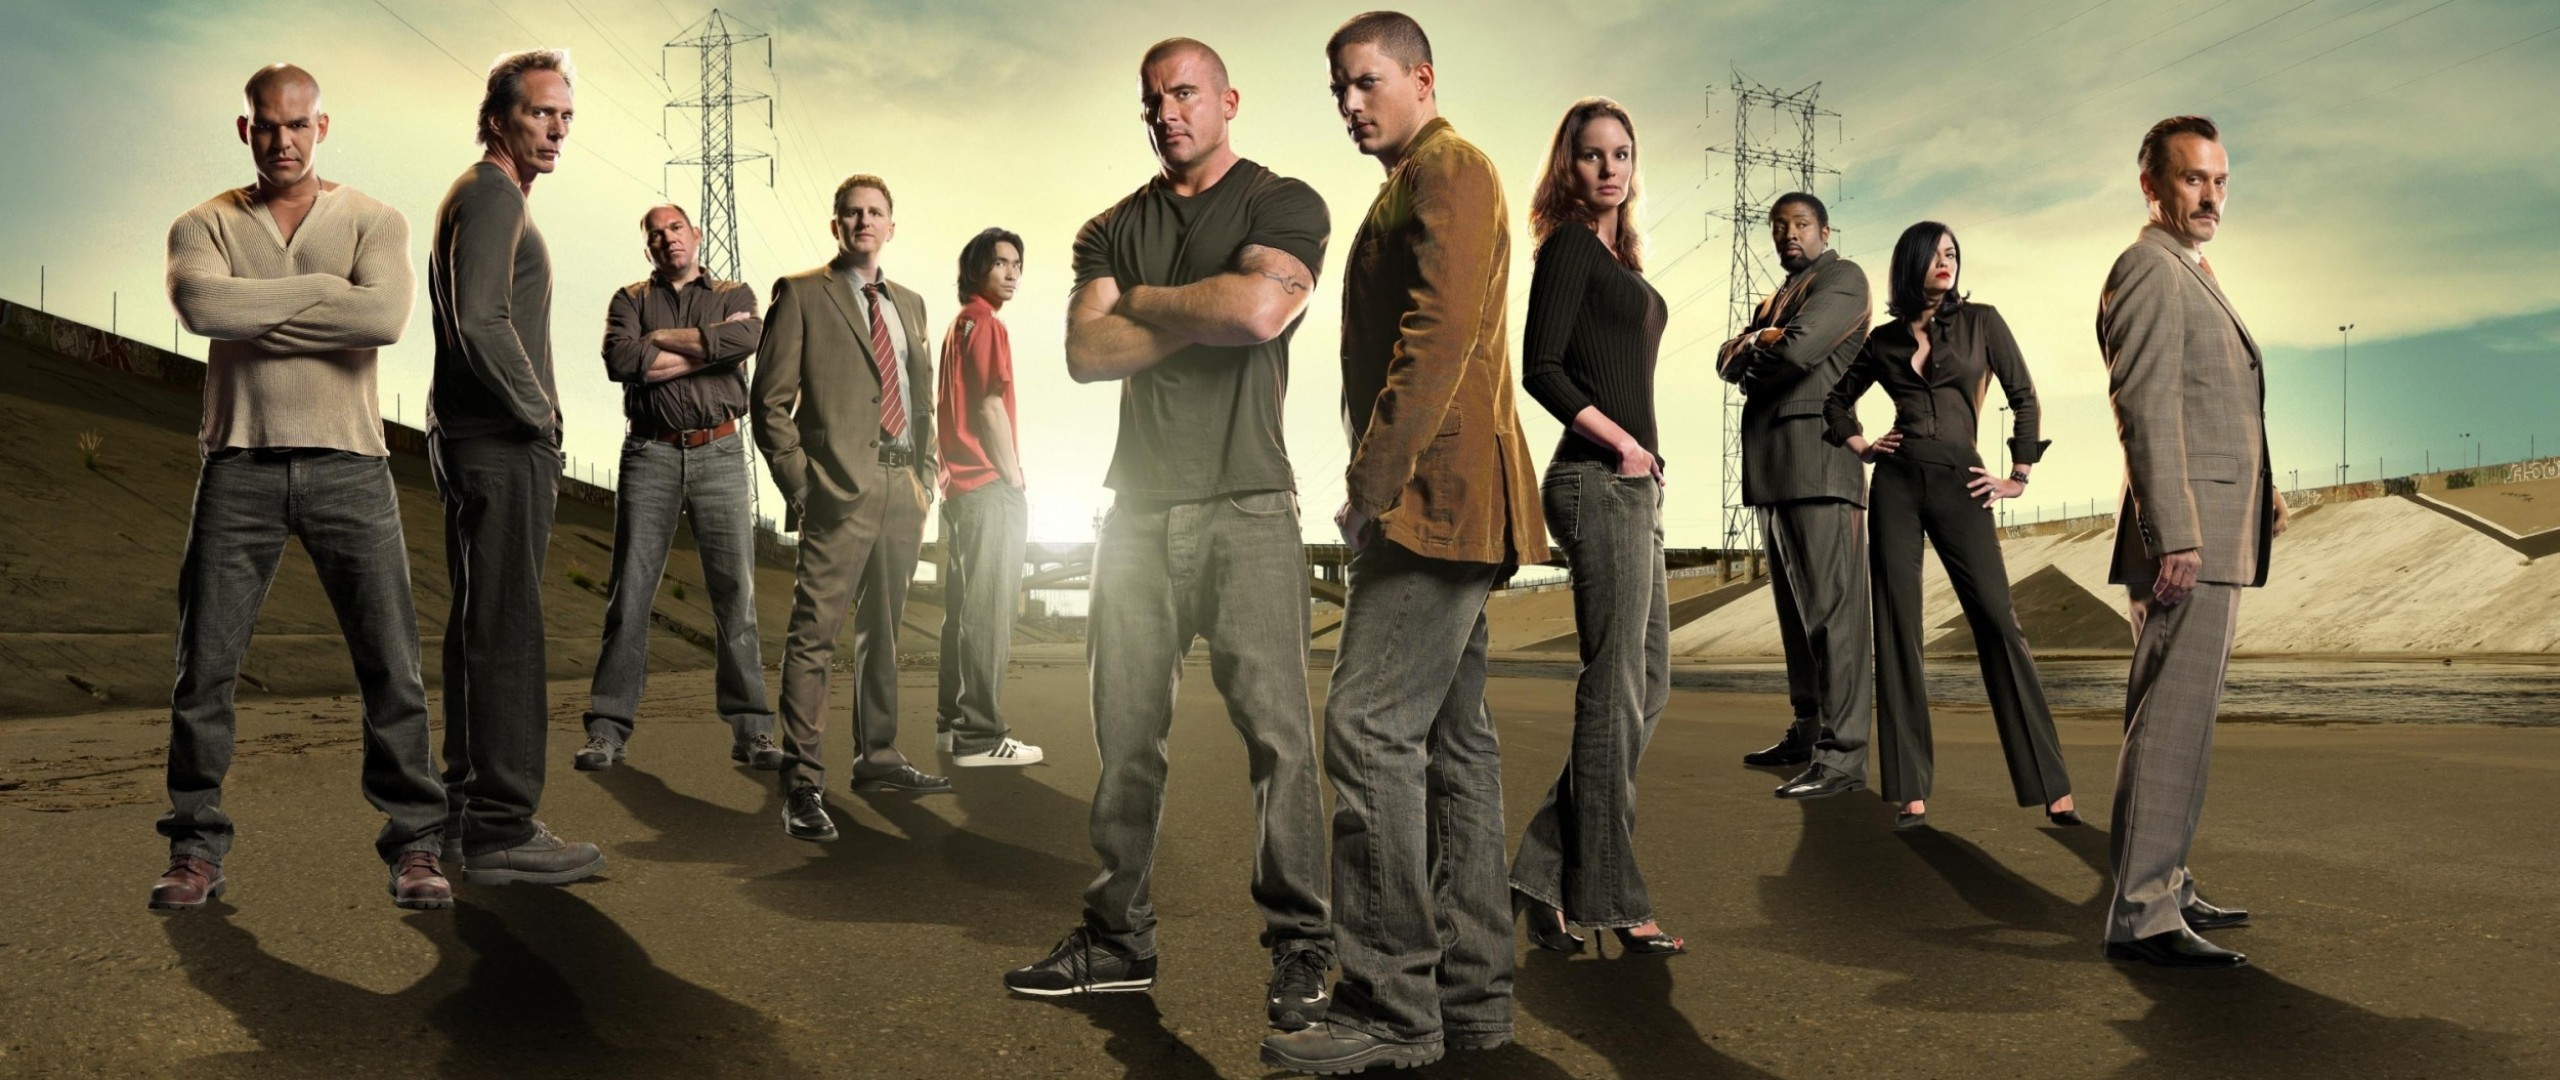 2560x1080 Download Wallpaper  Prison break, Tv show, Actors .